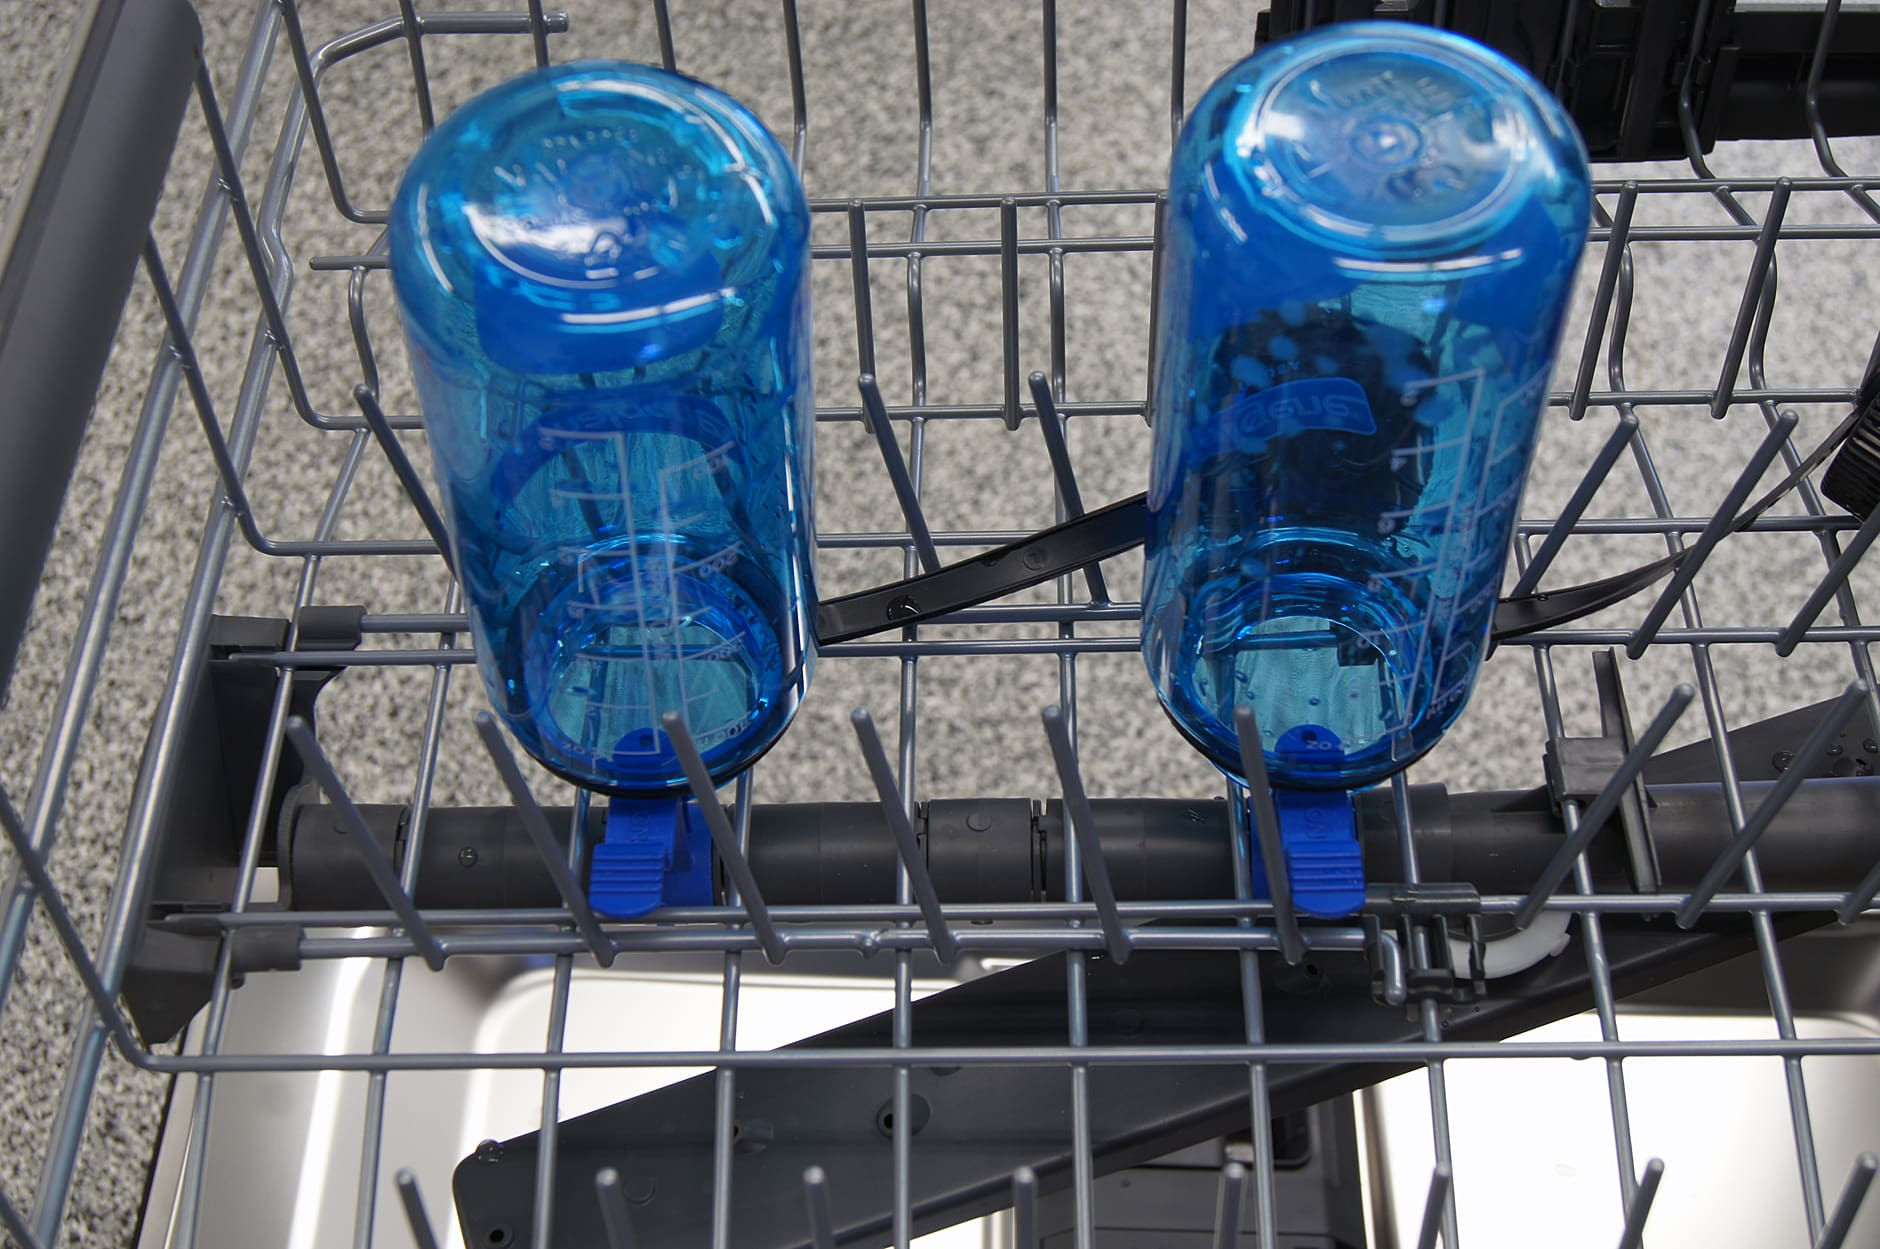 Electrolux EI24ID30QS bottle washer jets with bottles